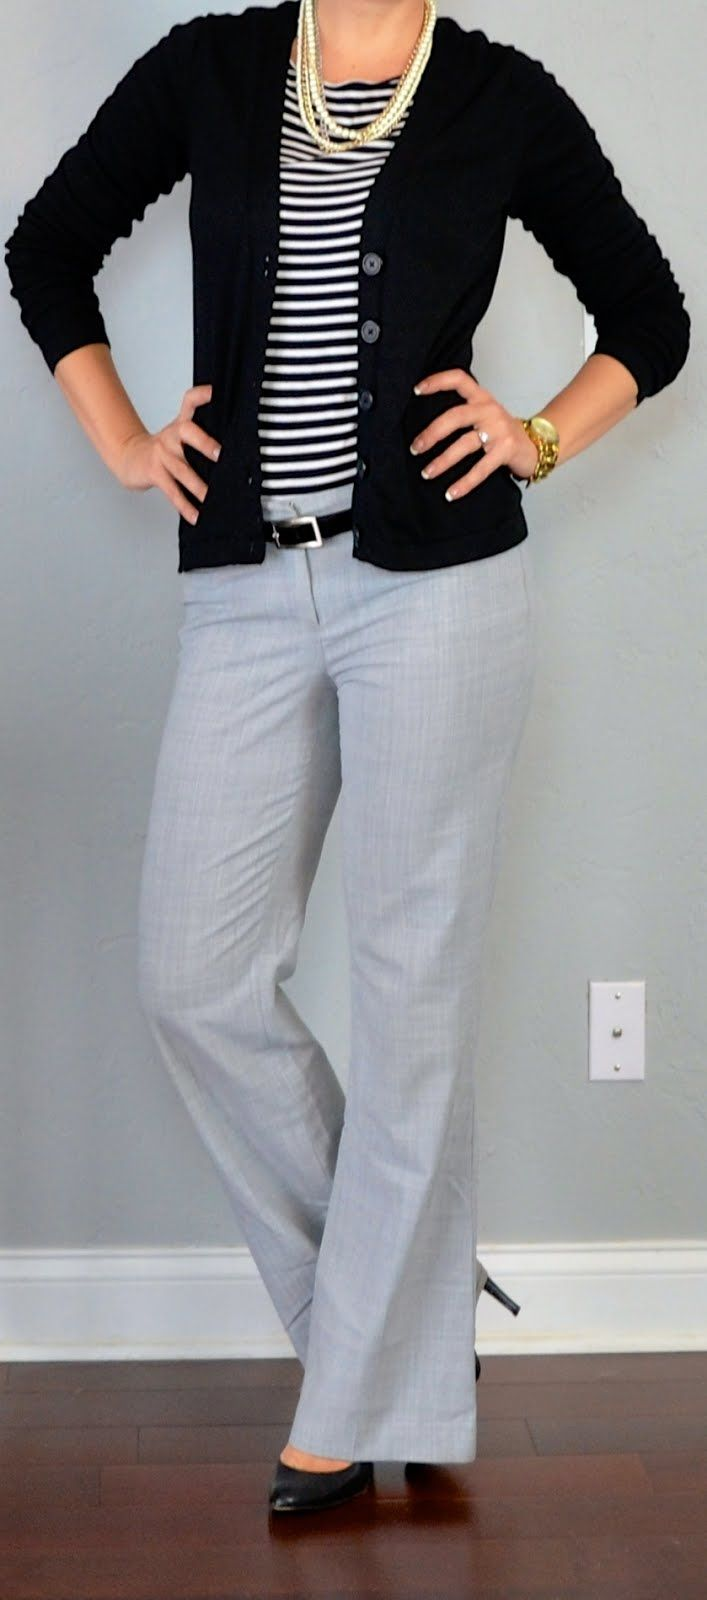 Black t shirt navy pants - Good For Work Outfit Posts Outfit Posts Striped Shirt Black Cardigan Grey Editor Pants